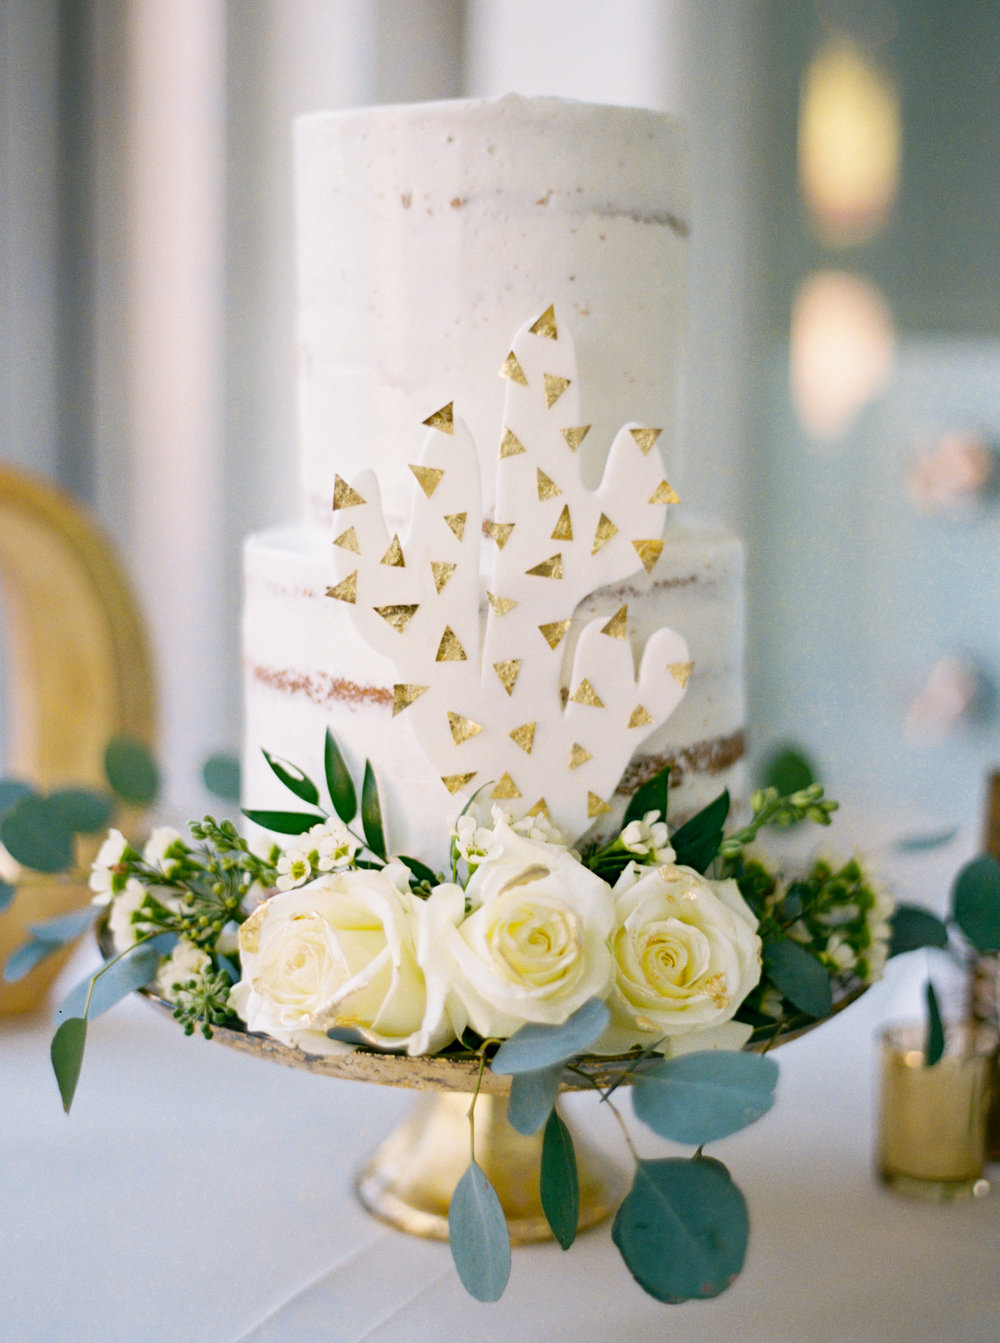 cactus-wedding-cake-white-gold.jpg